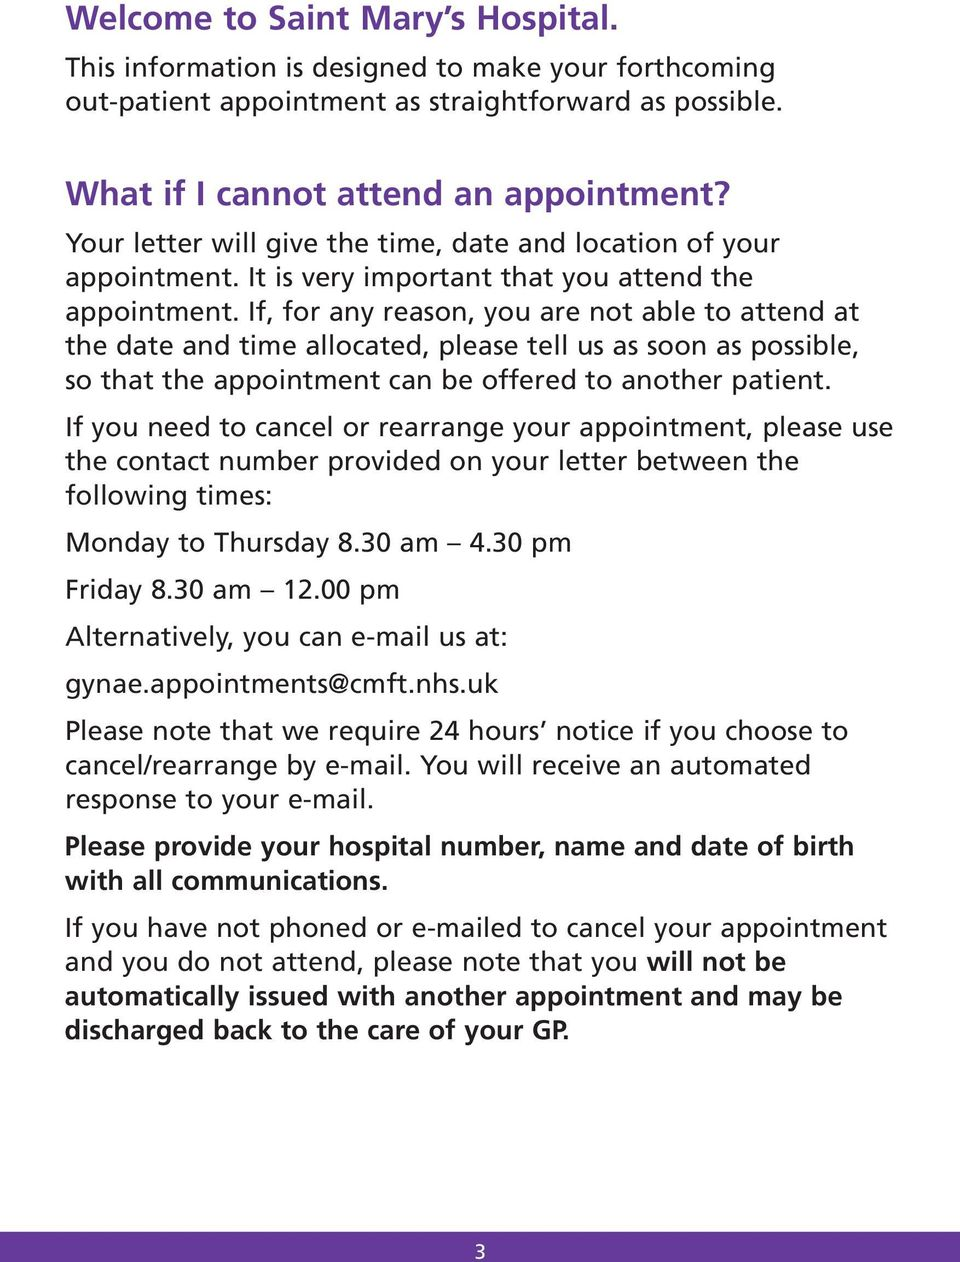 If, for any reason, you are not able to attend at the date and time allocated, please tell us as soon as possible, so that the appointment can be offered to another patient.